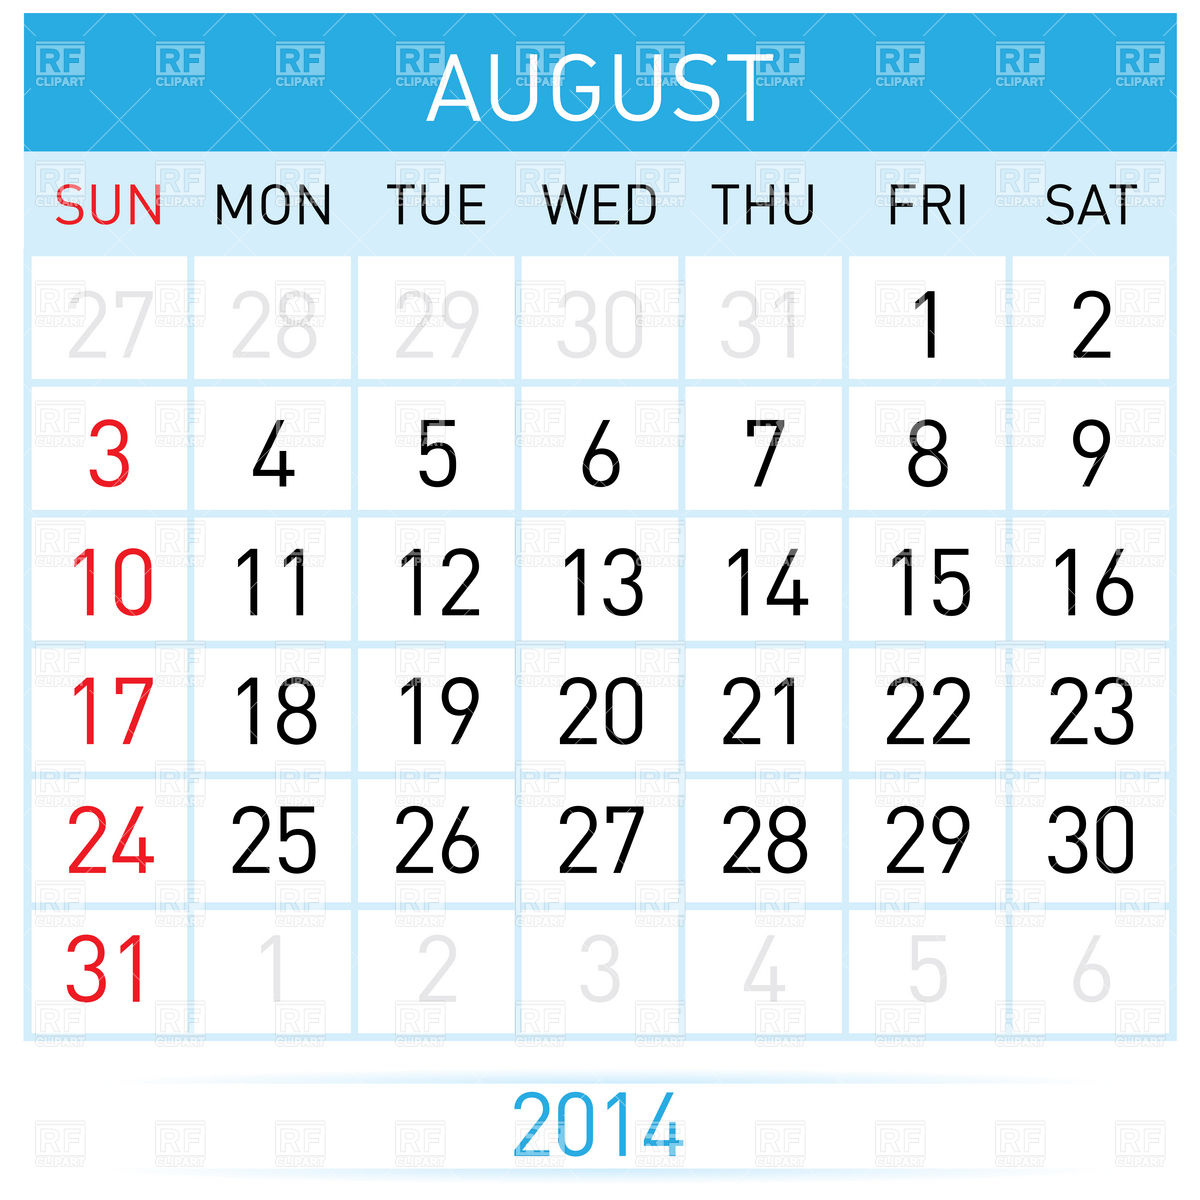 August 2014 calendar clipart banner black and white library August 2014 сalendar Vector Image #7012 – RFclipart banner black and white library